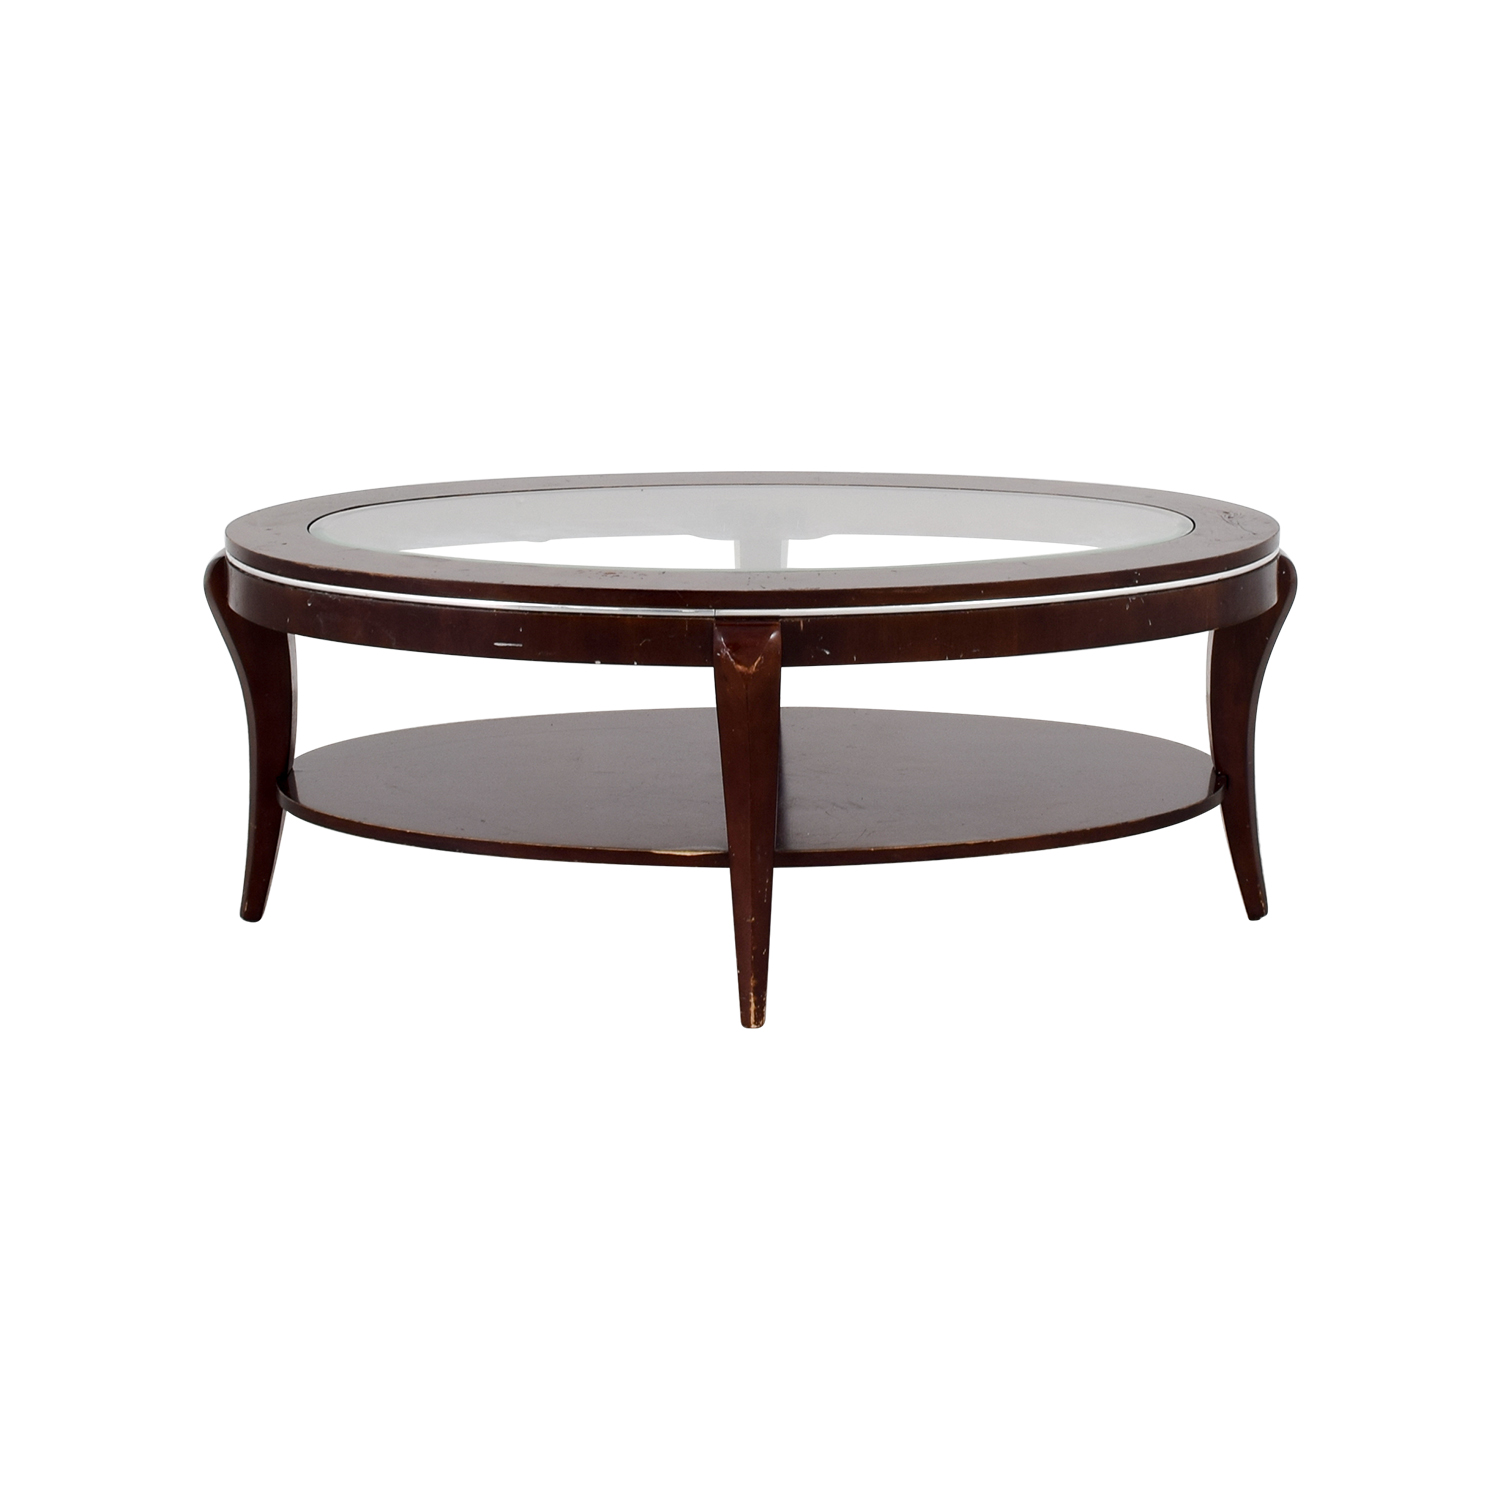 89% OFF   Wood And Glass Oval Coffee Table / Tables